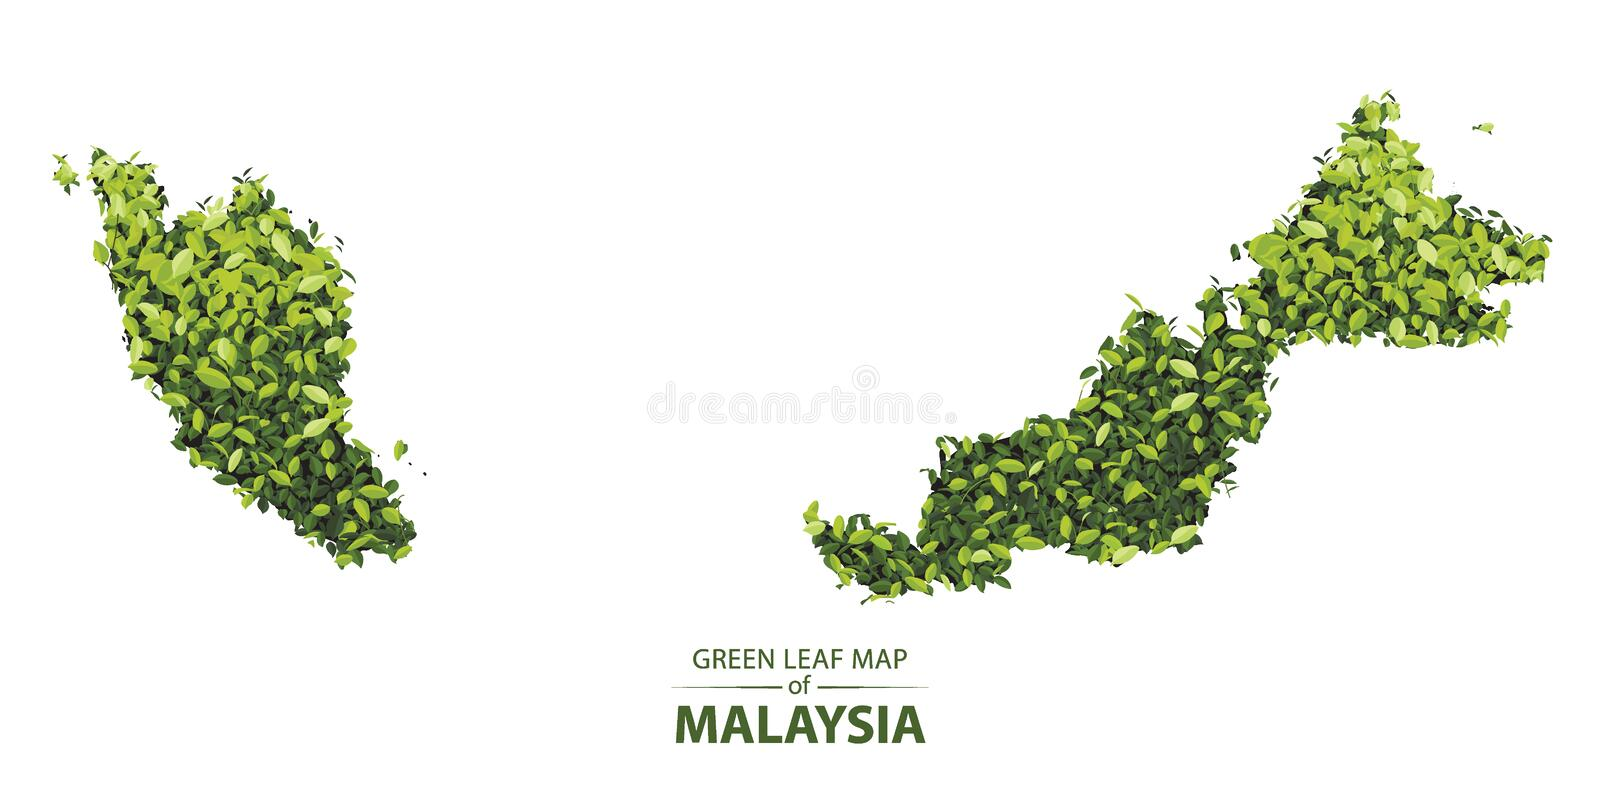 Green leaf map of malaysia vector illustration of a forest is concept royalty free illustration